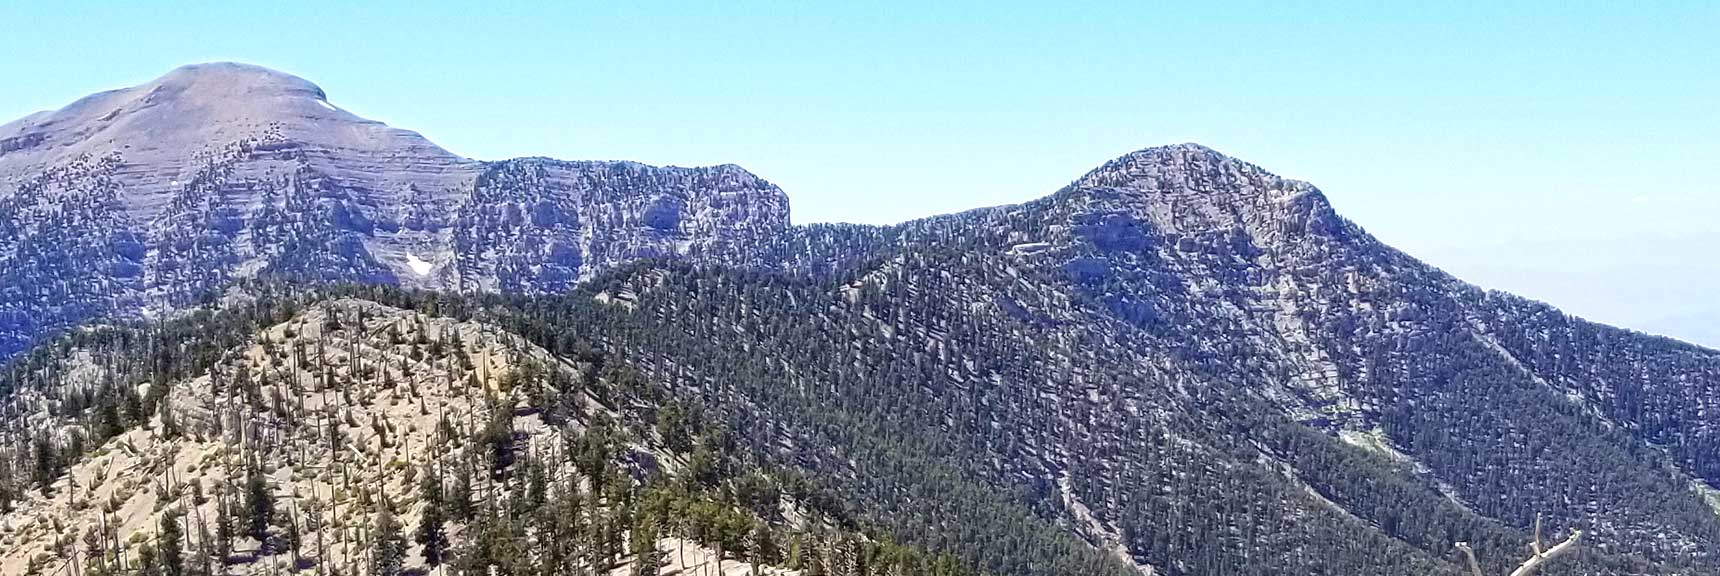 Lee Peak Approach Ridge from Lee Canyon Viewed from Mummy Mt., Spring Mountains, Nevada